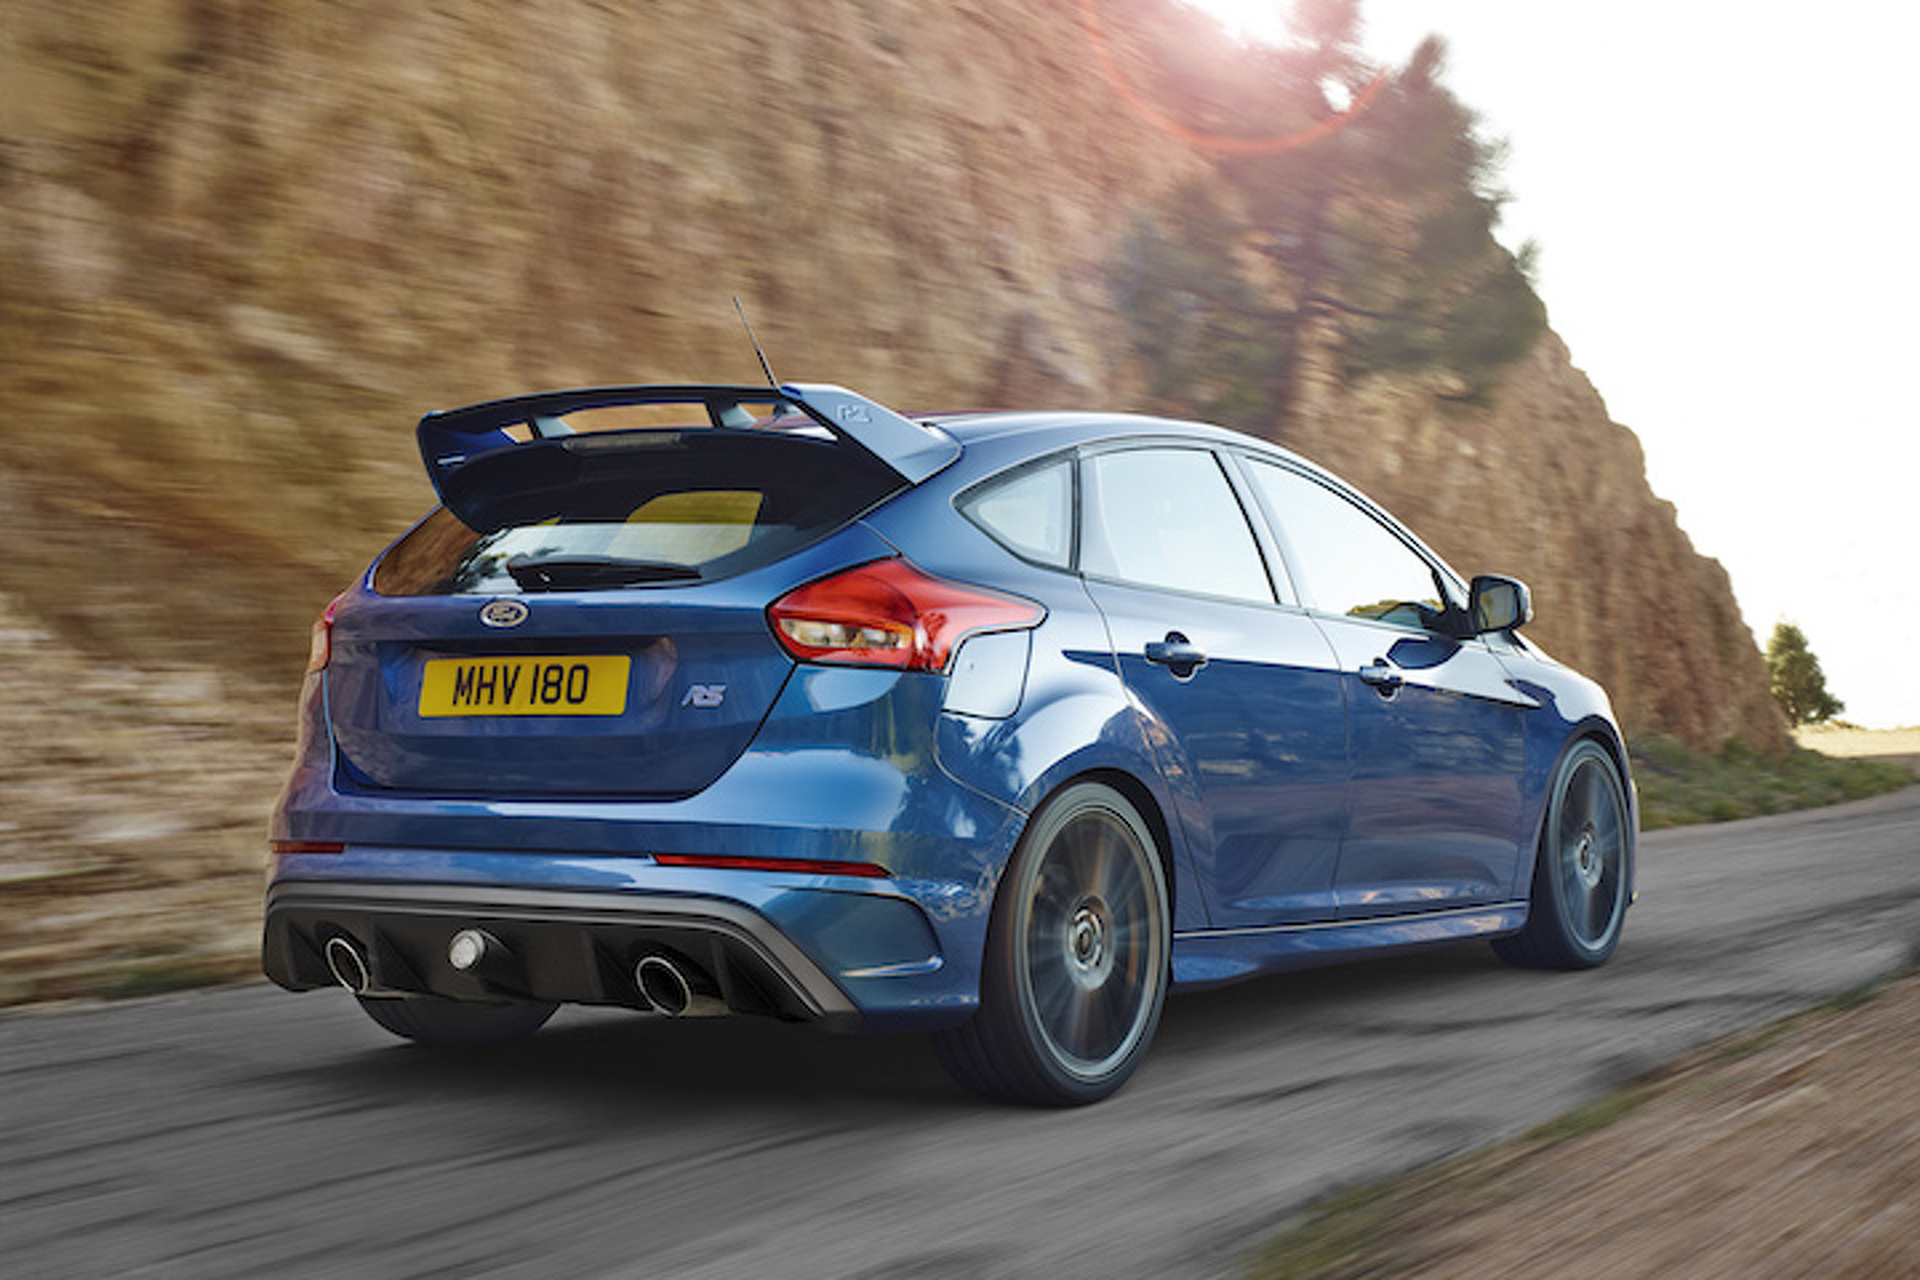 A Focus RS Re-imagined as an Aston Martin? Yes, Please!